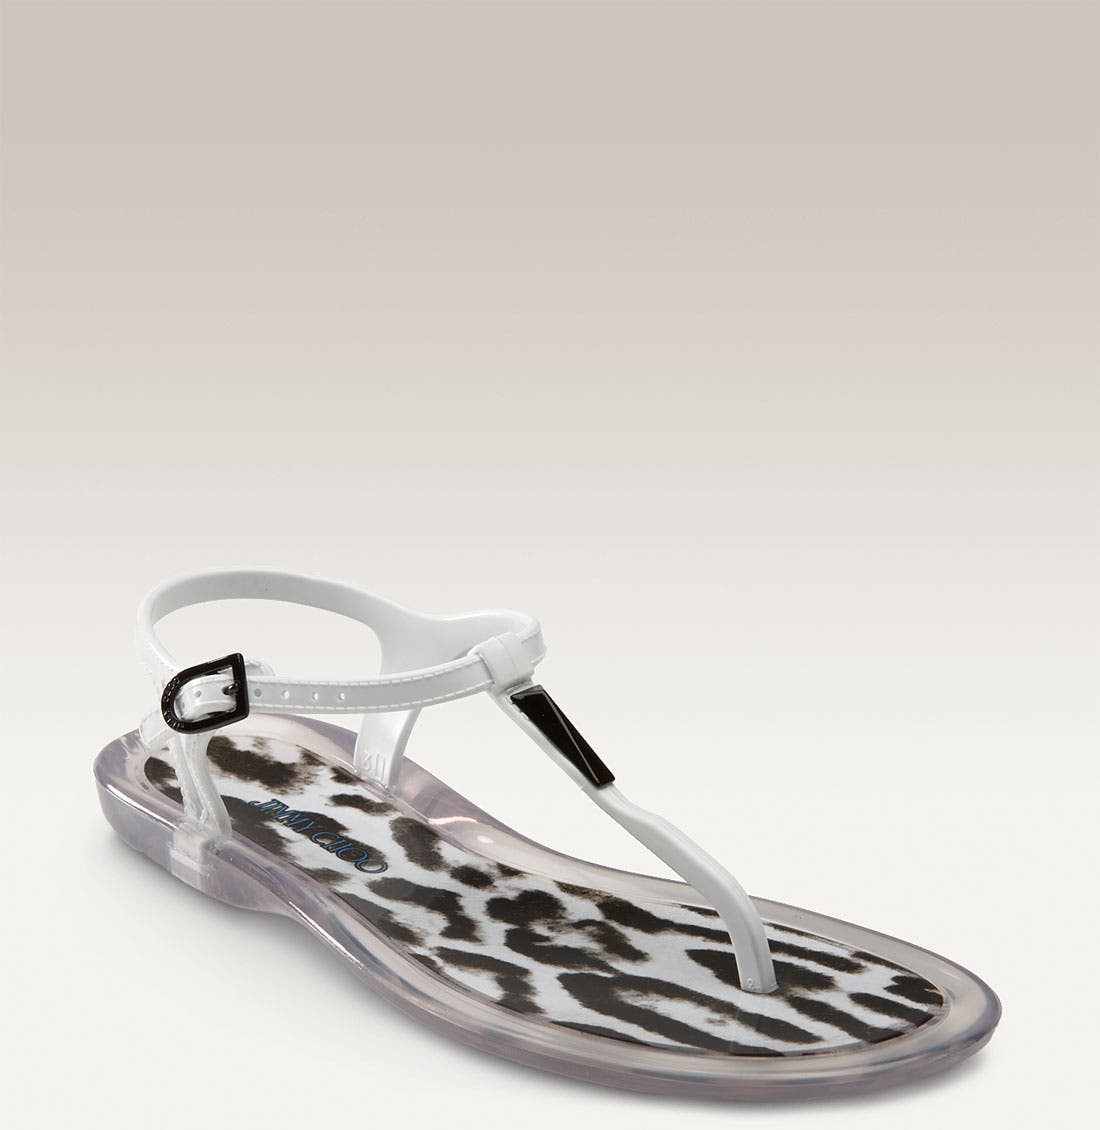 'Maui' Jelly Thong Sandal, Main, color, 001